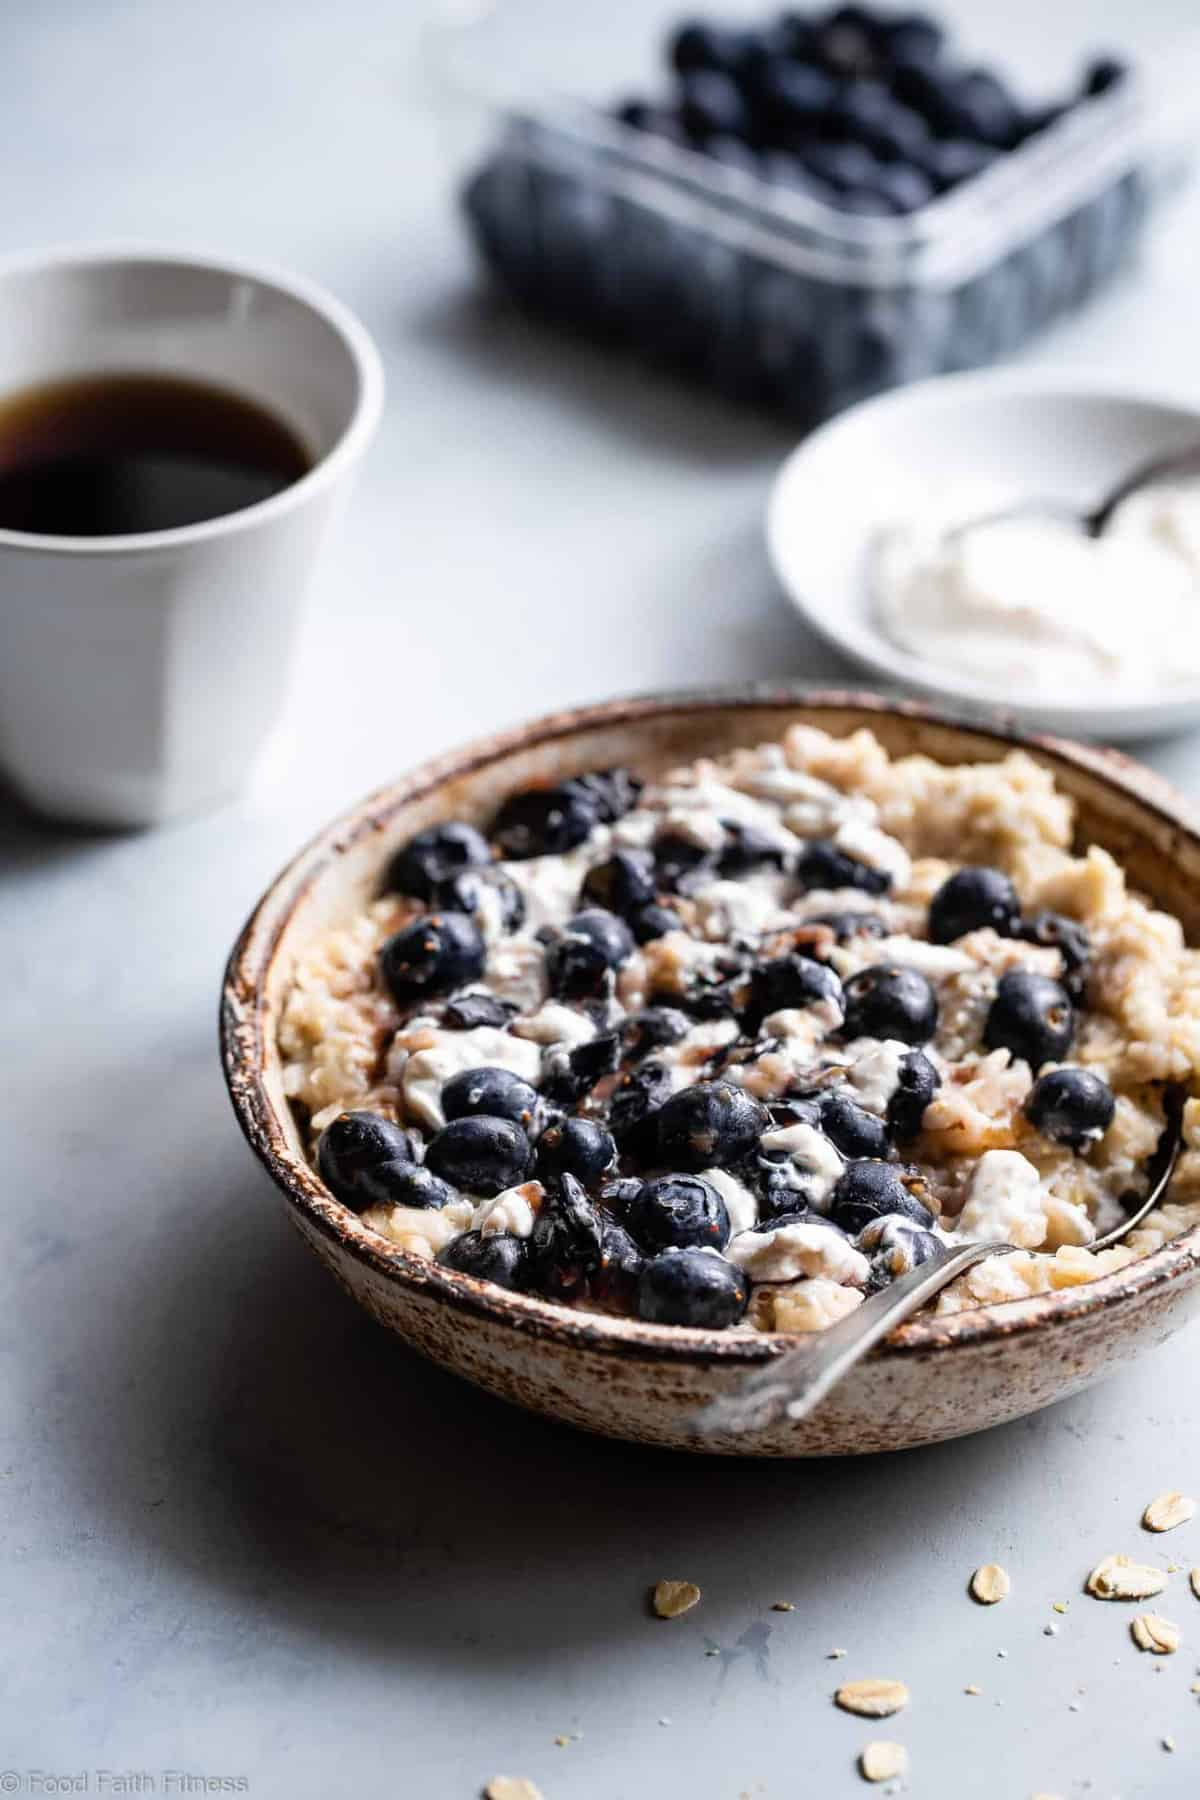 Blueberry Cheesecake Oatmeal - This quick and easy Blueberry Oatmeal with Cheesecake Swirl is a healthy, low fat and gluten free breakfast that tastes like waking up to cheesecake! | #Foodfaithfitness |